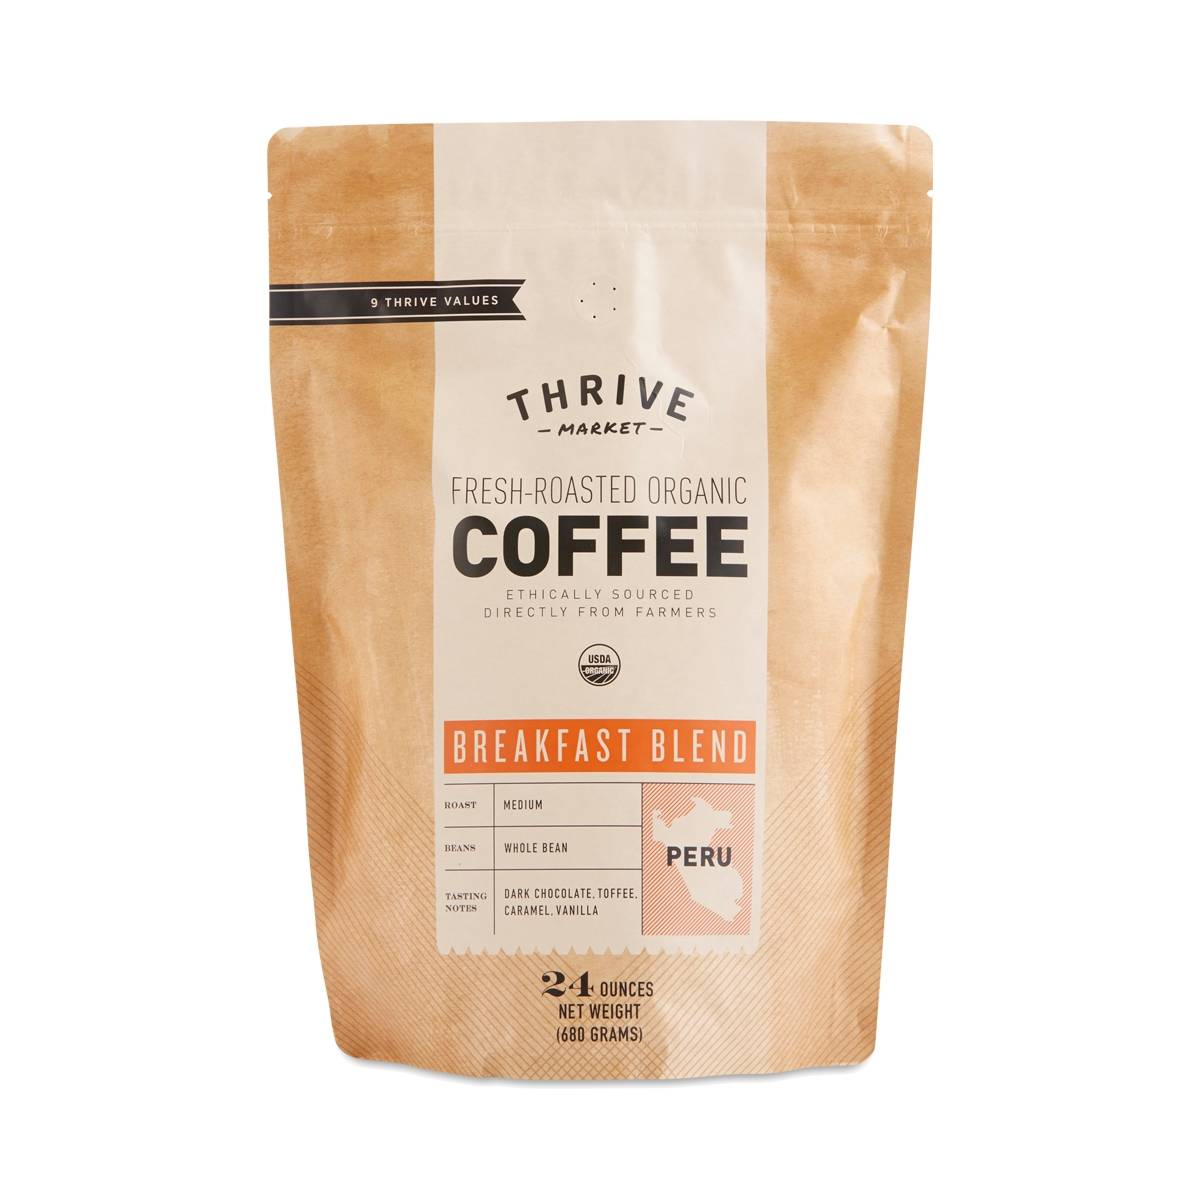 Thrive Market's Breakfast Blend